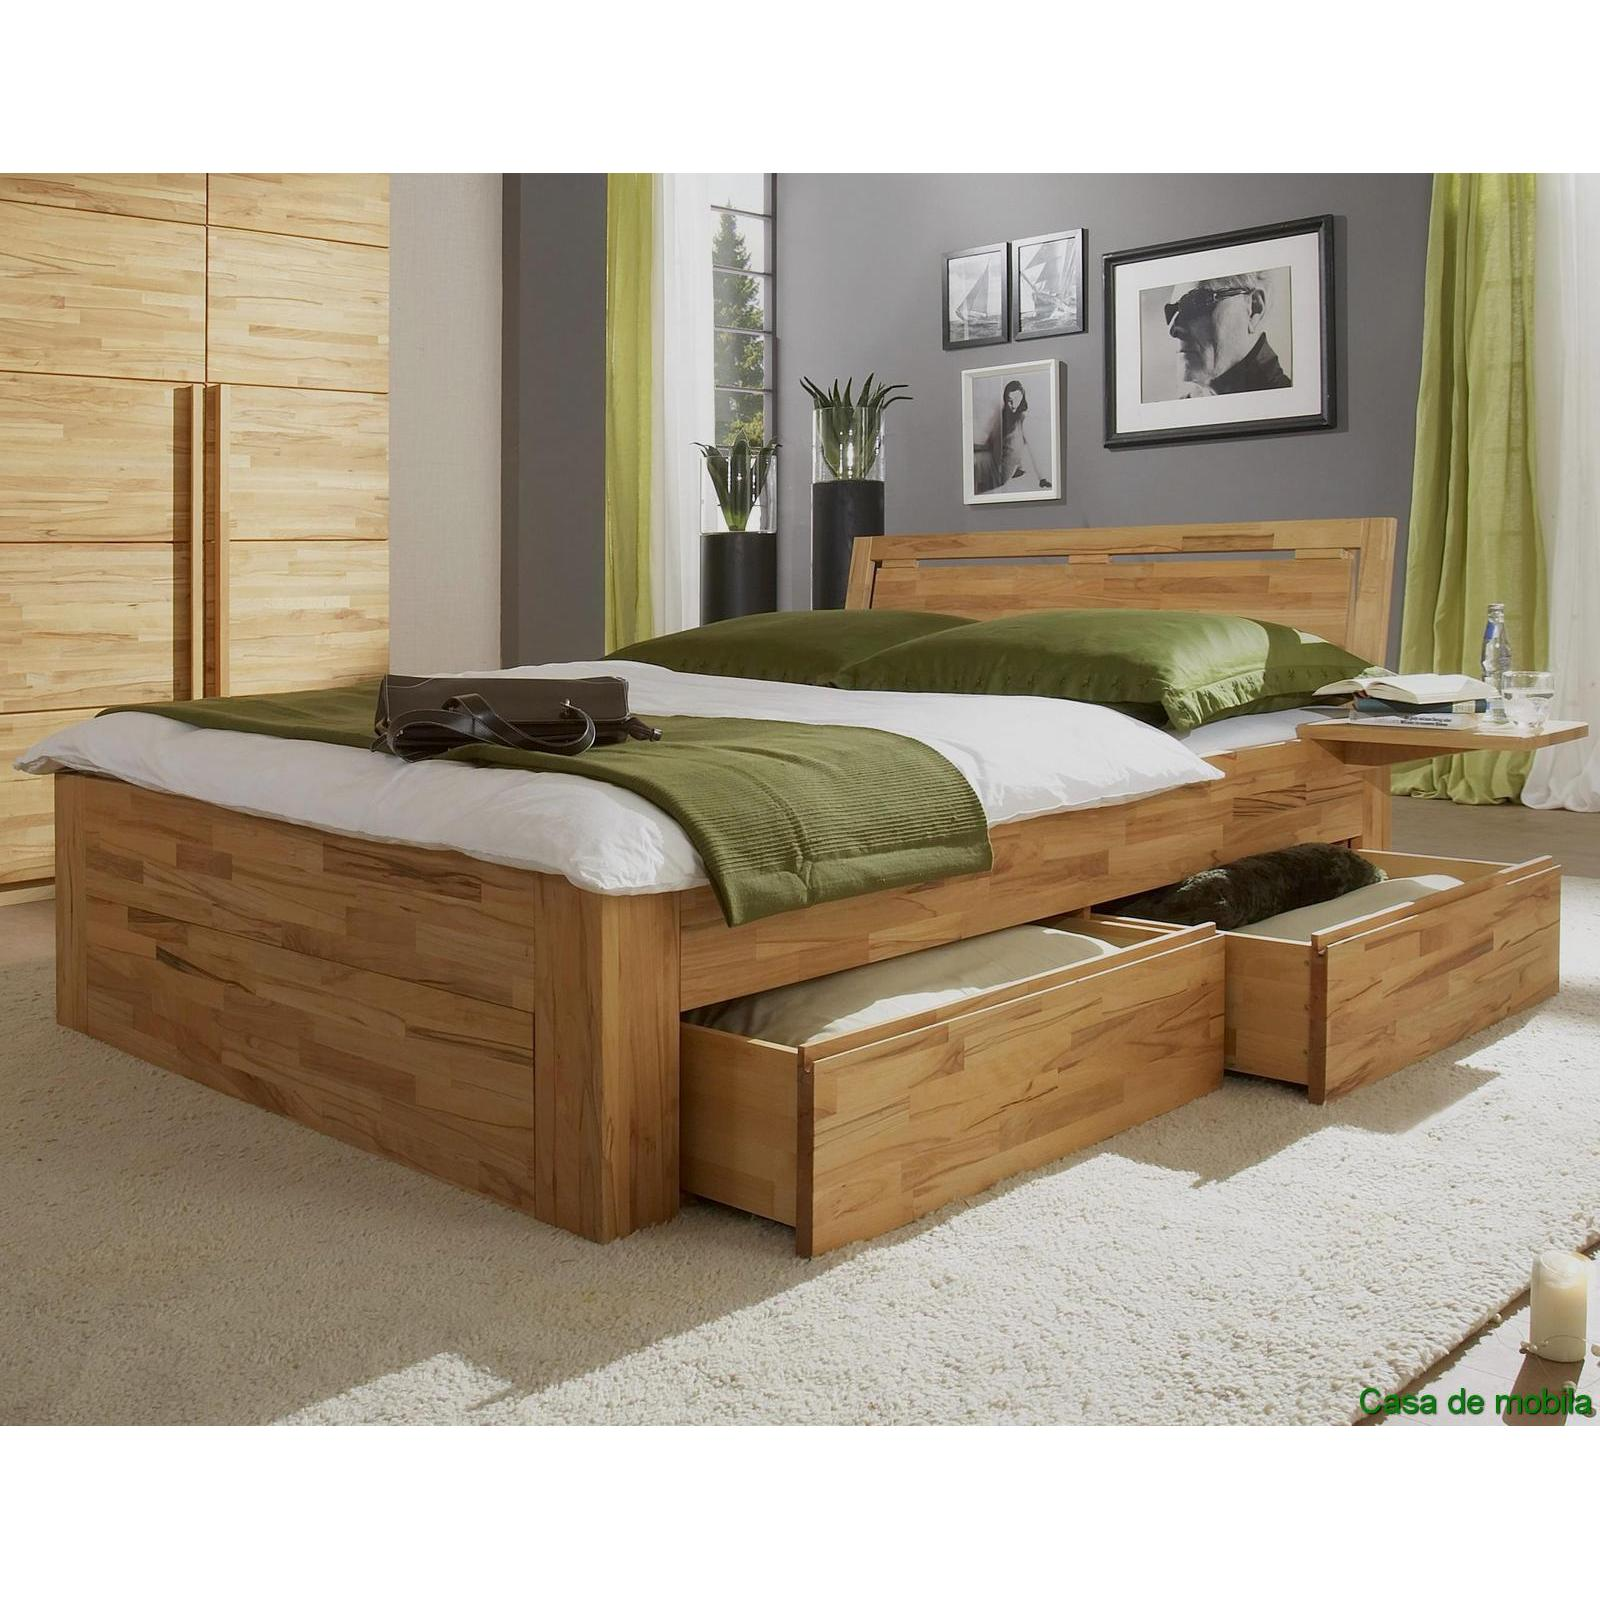 bett 160x200 holz images. Black Bedroom Furniture Sets. Home Design Ideas